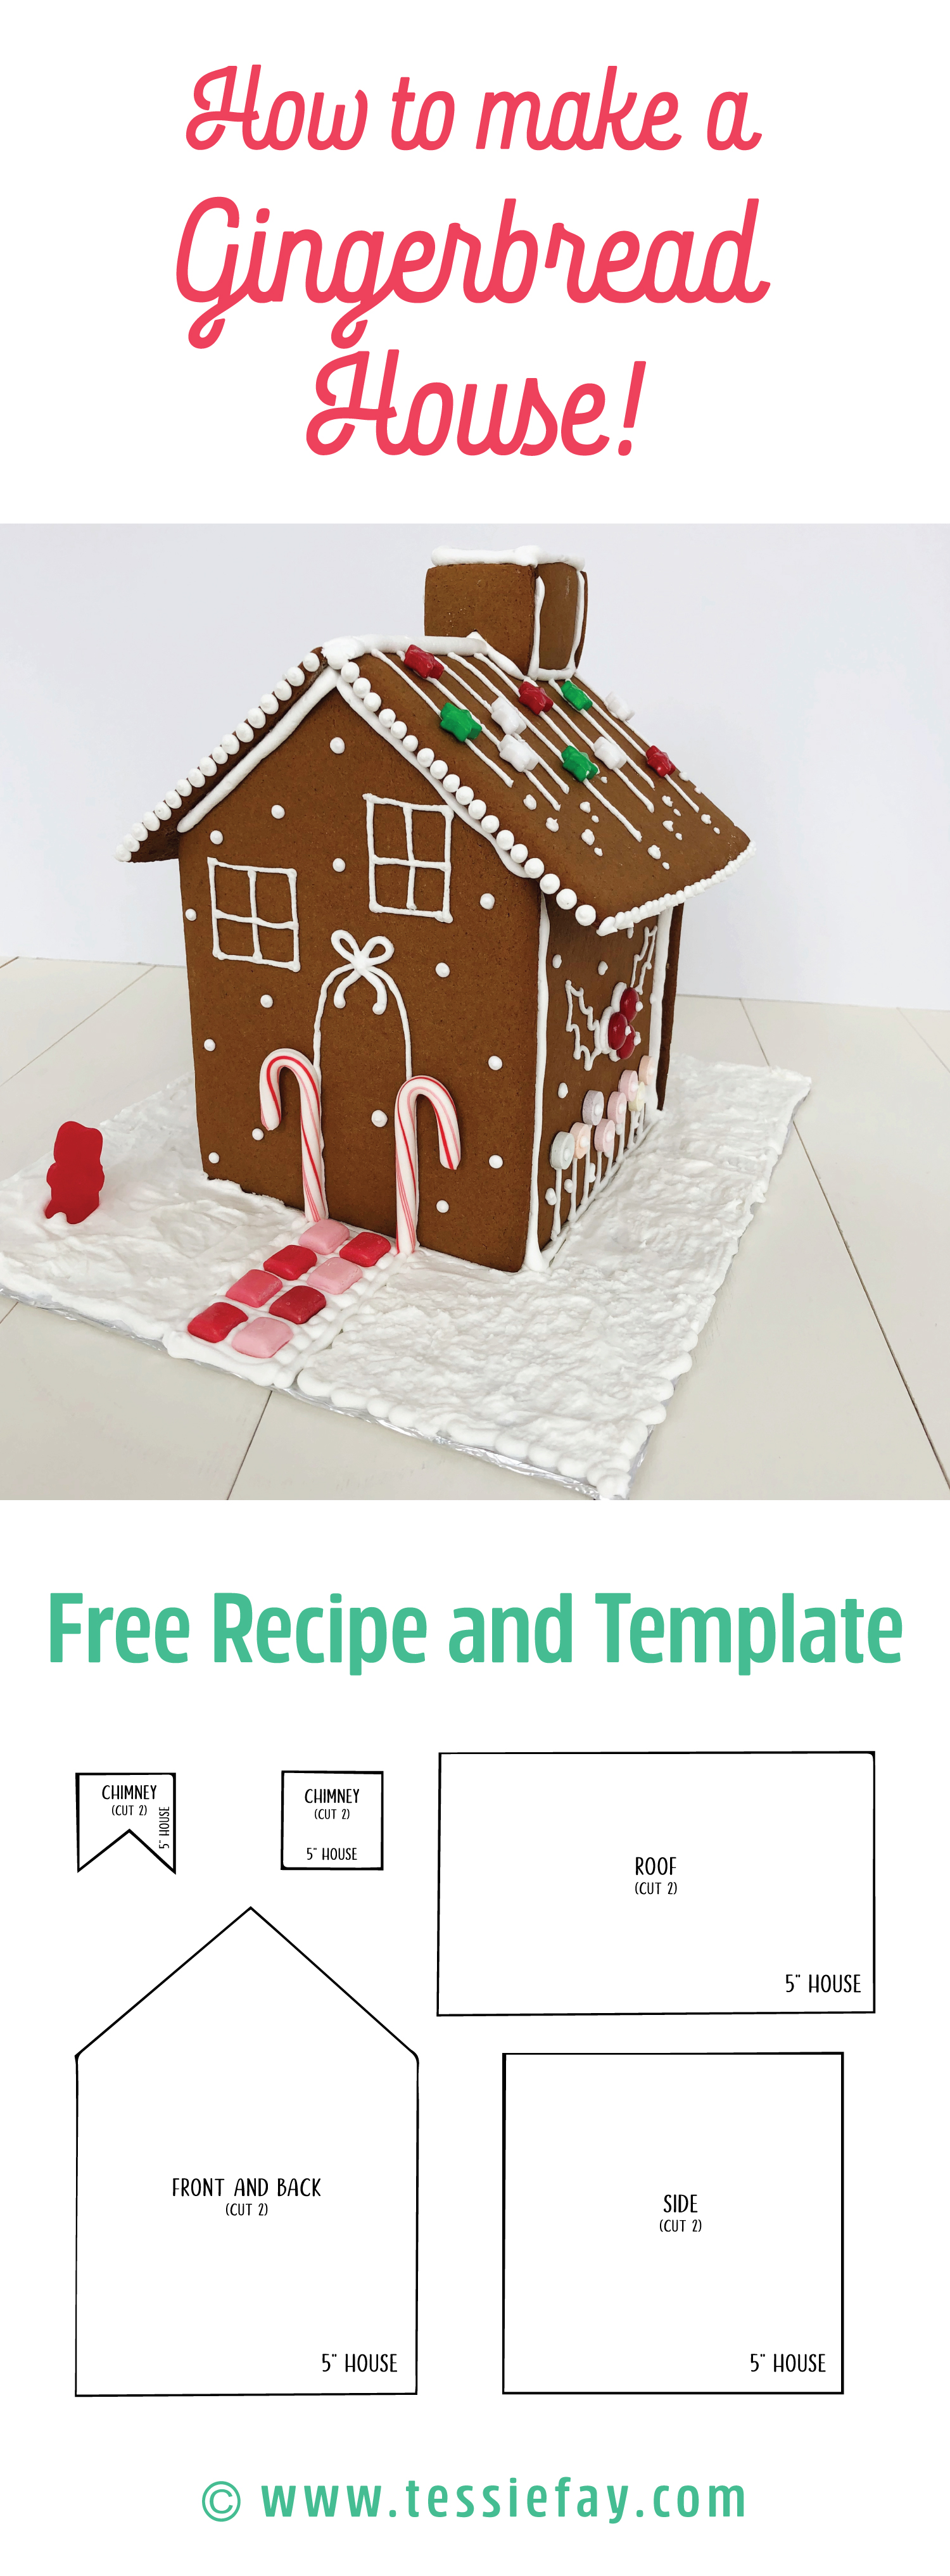 How to make a gingerbread house from scratch. Free template and recipe to create your very own gingerbread house.